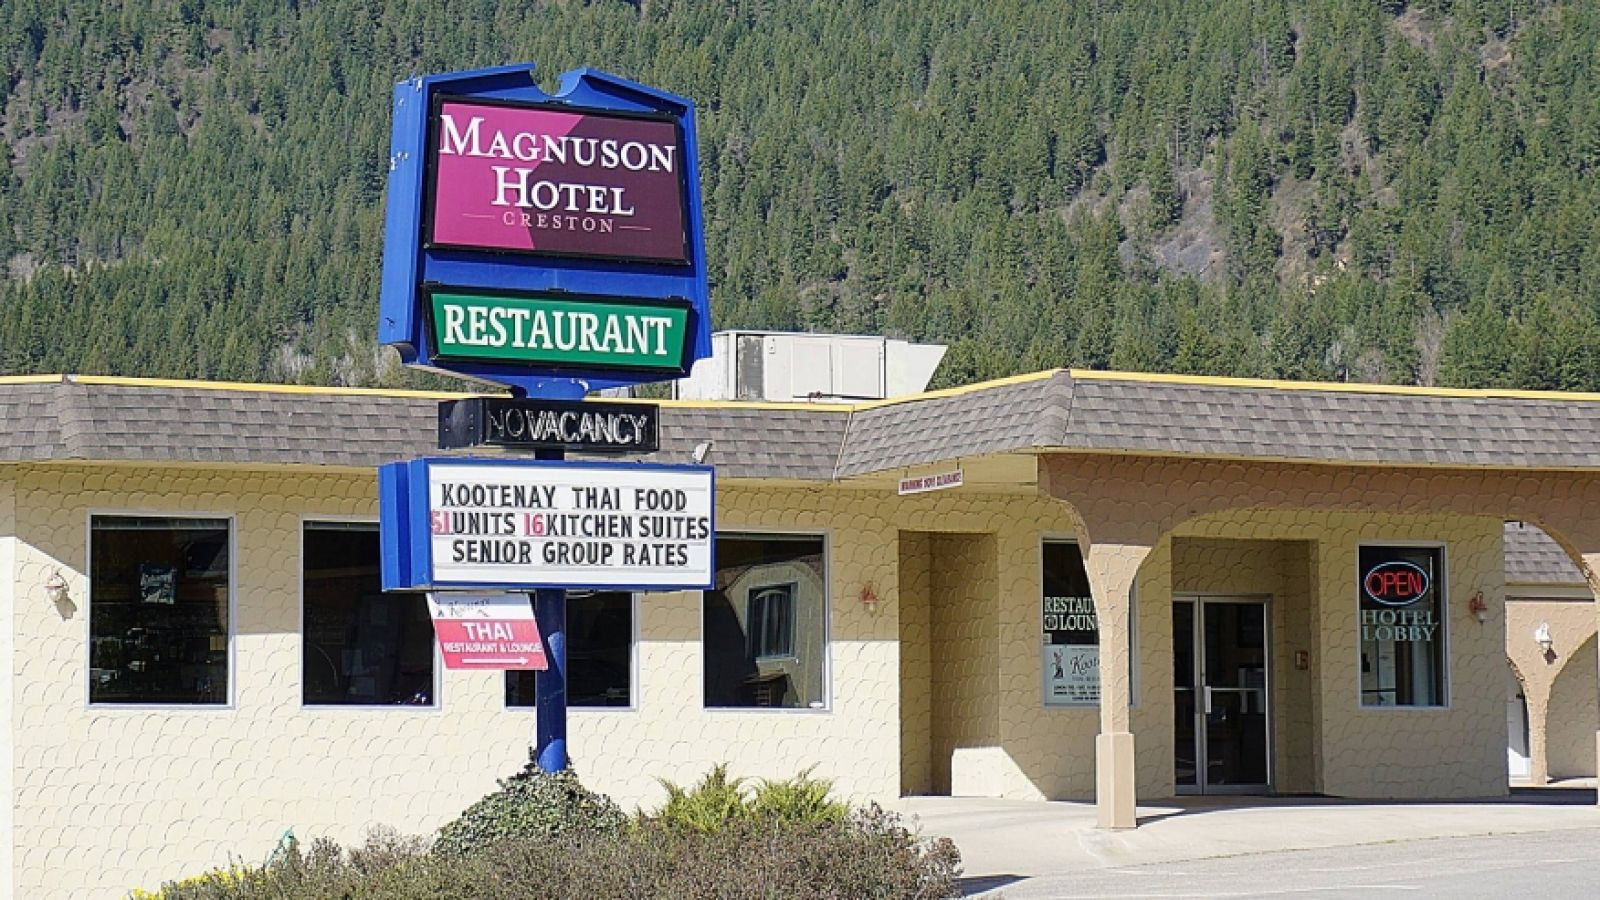 Welcome to the Magnuson Hotel & Restaurant